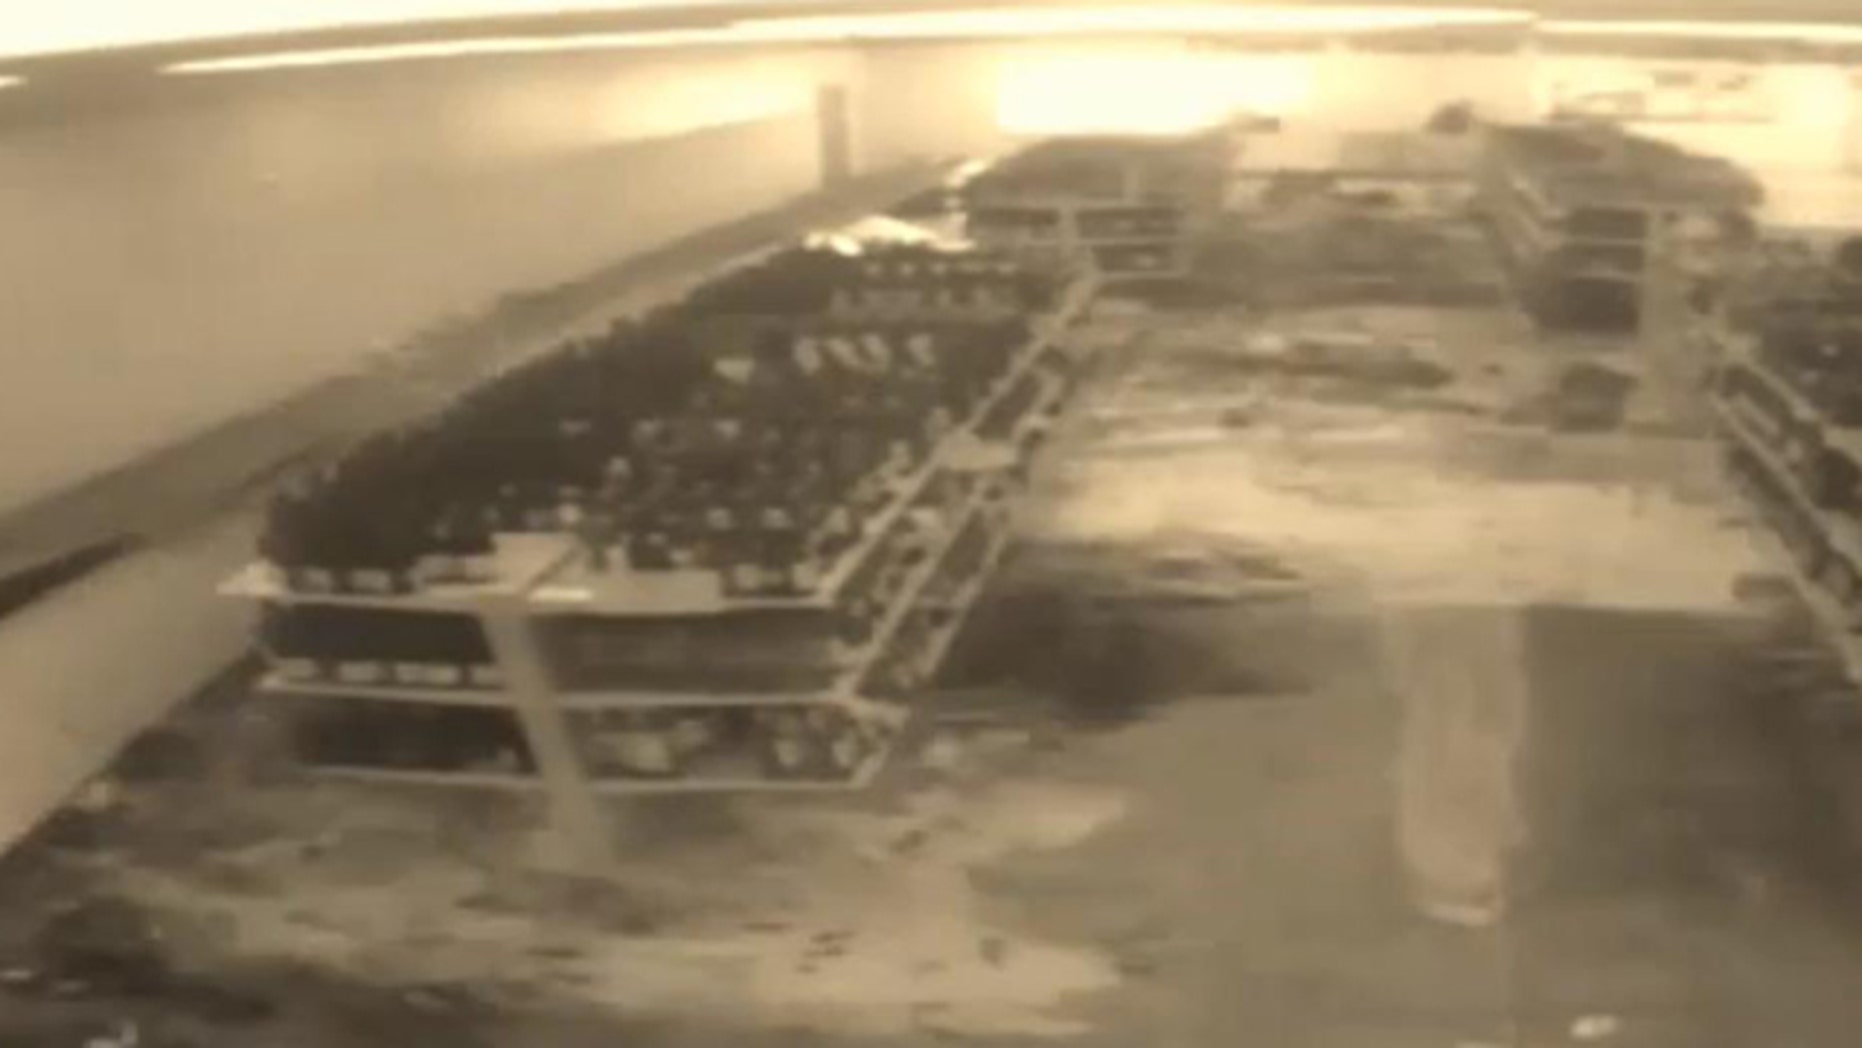 In this image taken from video, a shelf collapses at a liquor store in Sheboygan, Wisc., causing thousands of bottles of wine to shatter.